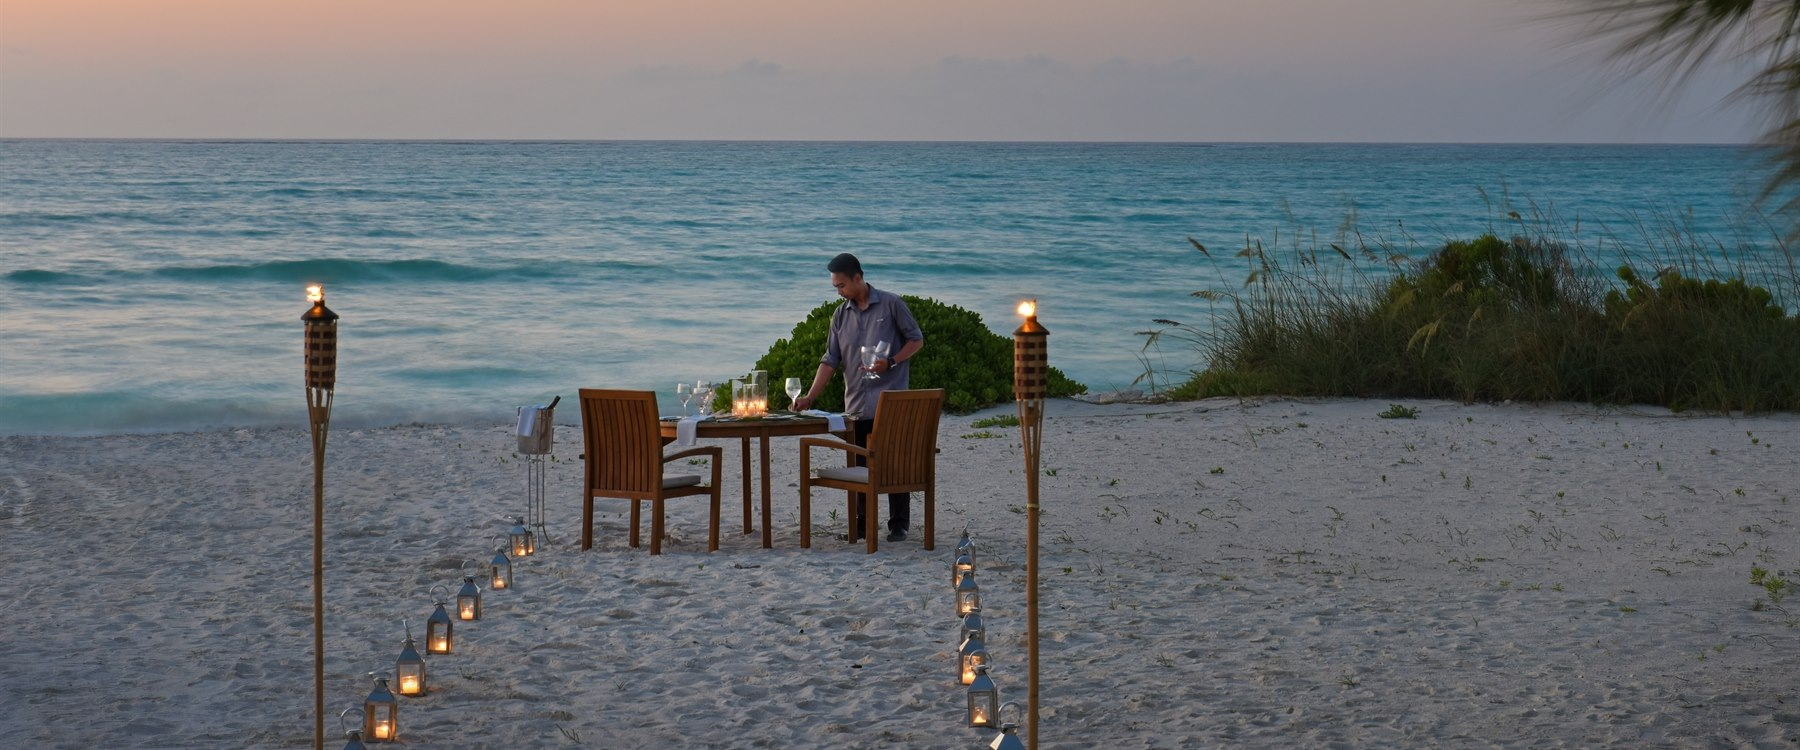 Set up romantic beach dinner at COMO Parrot Cay, Turks and Caicos